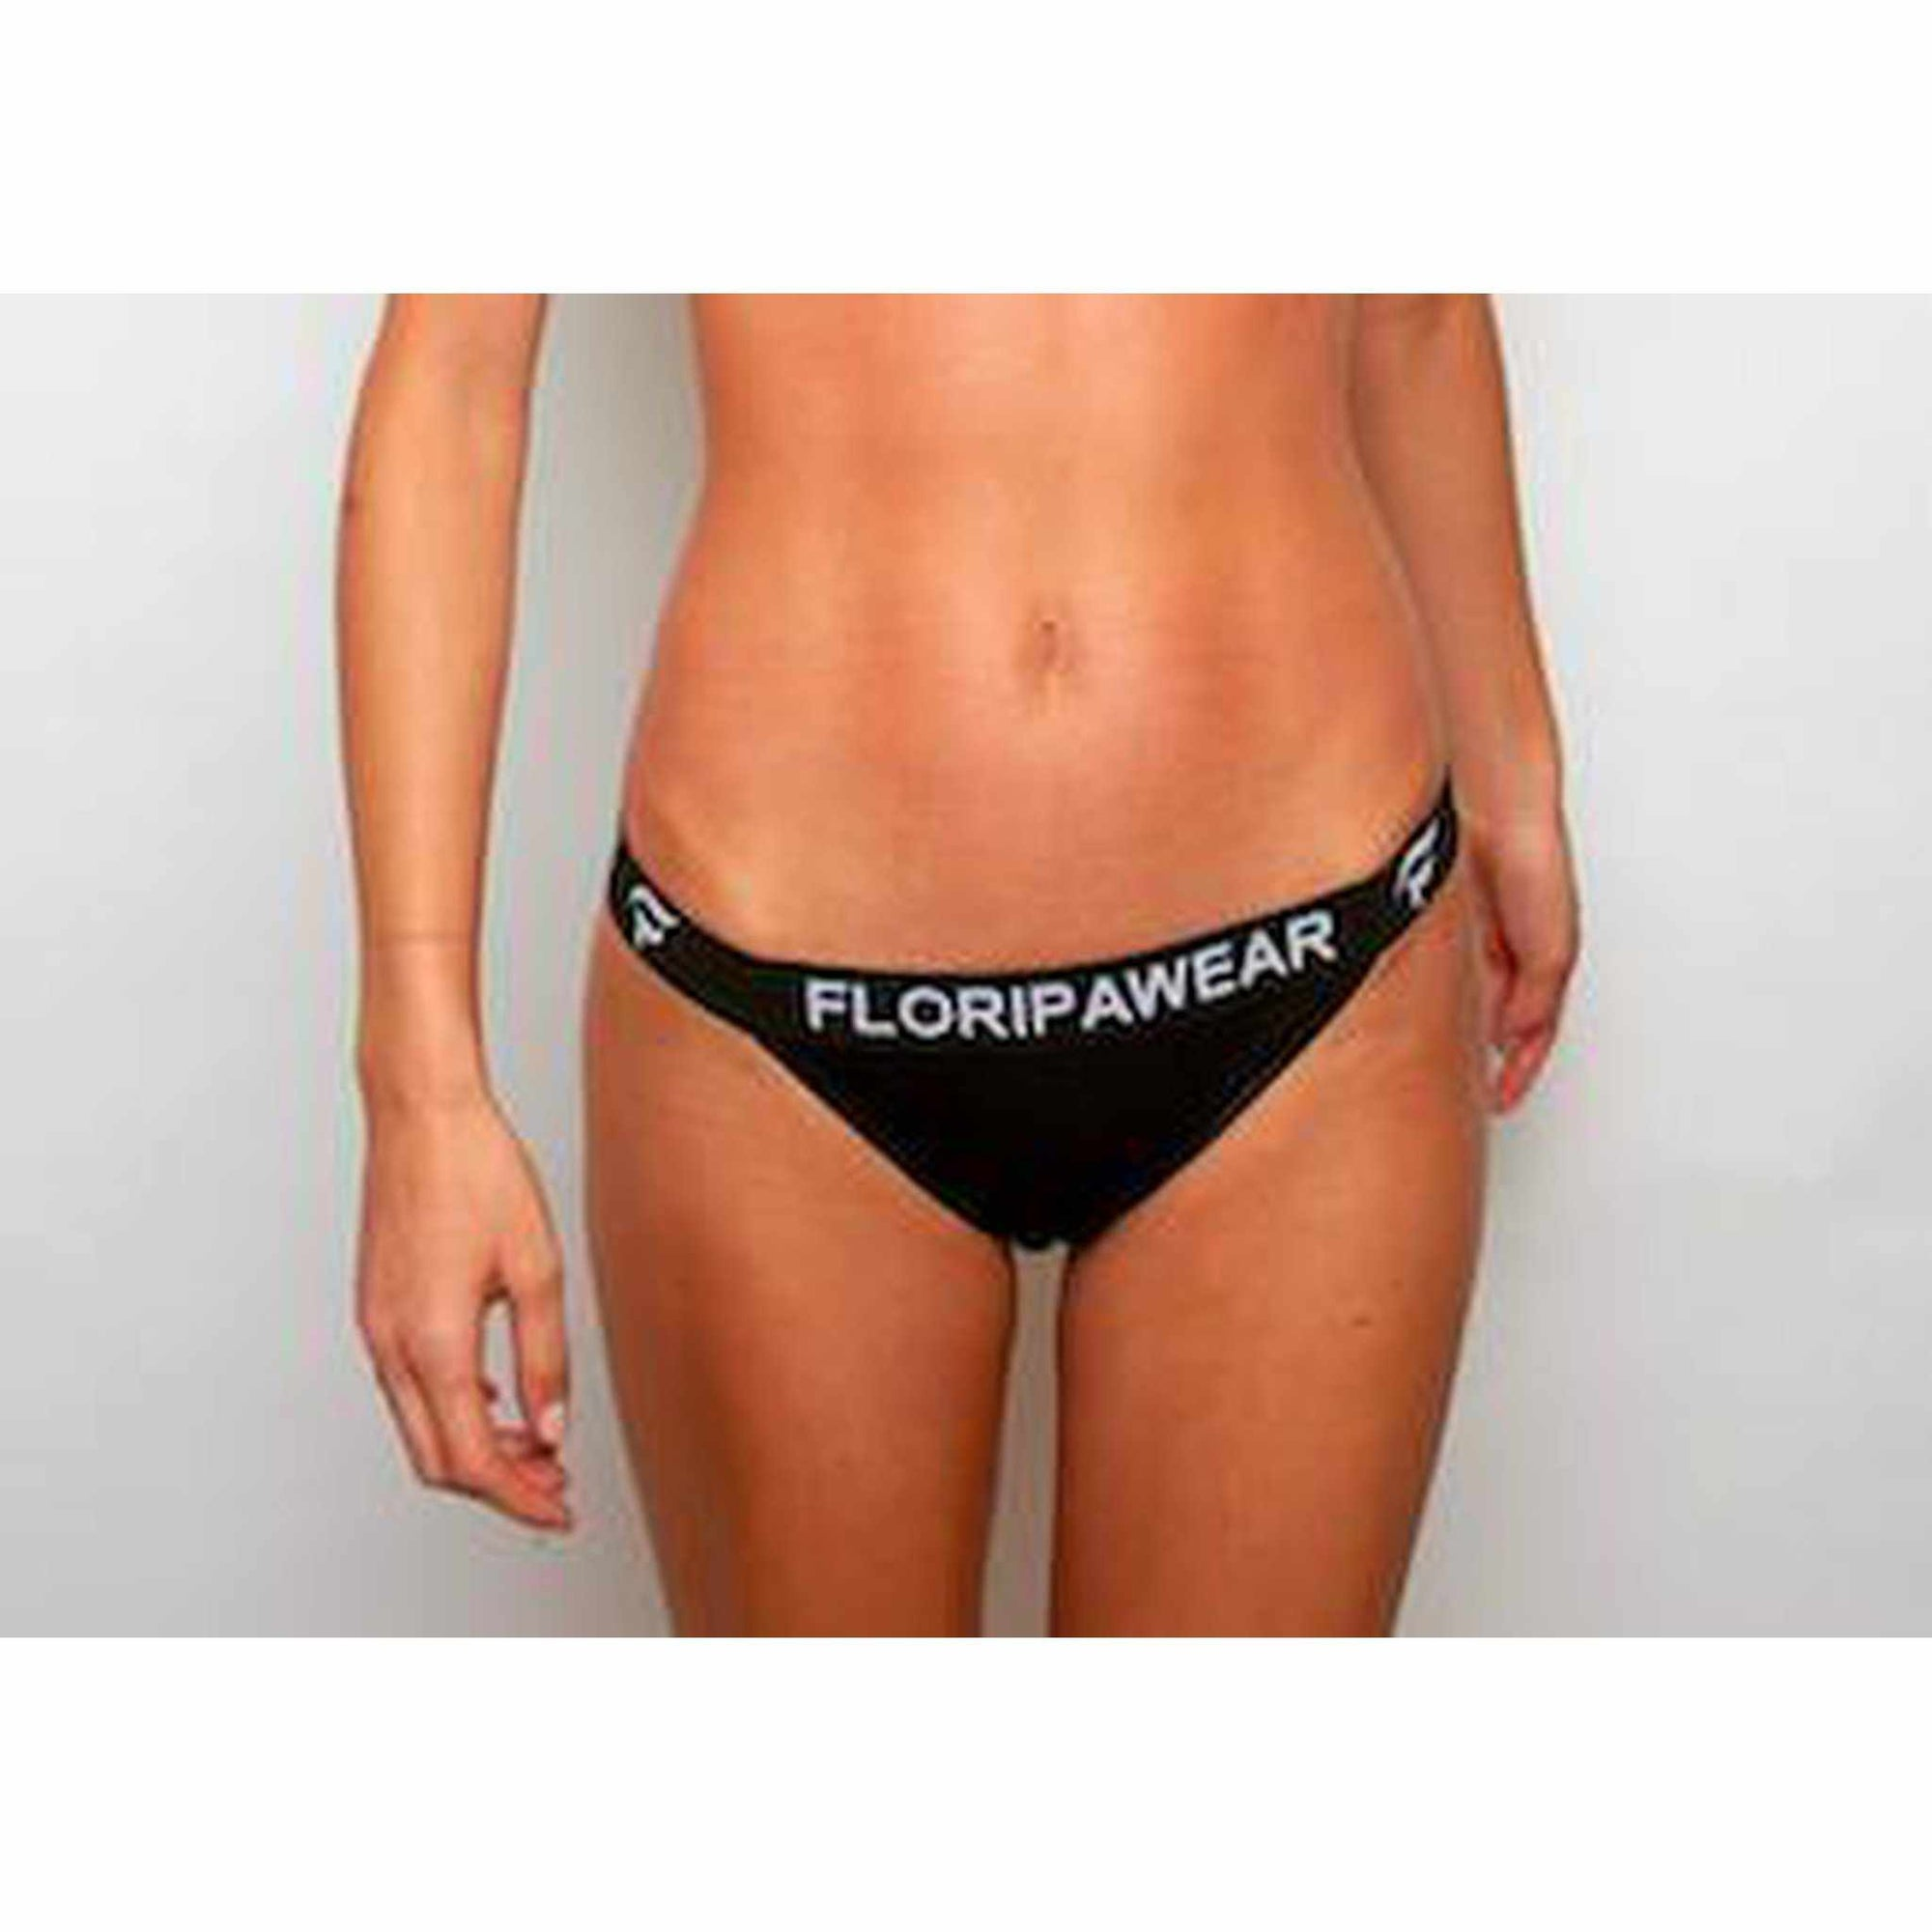 Ethical Underwear UK Noite Black Thong-Ethical underwear UK-Floripawear